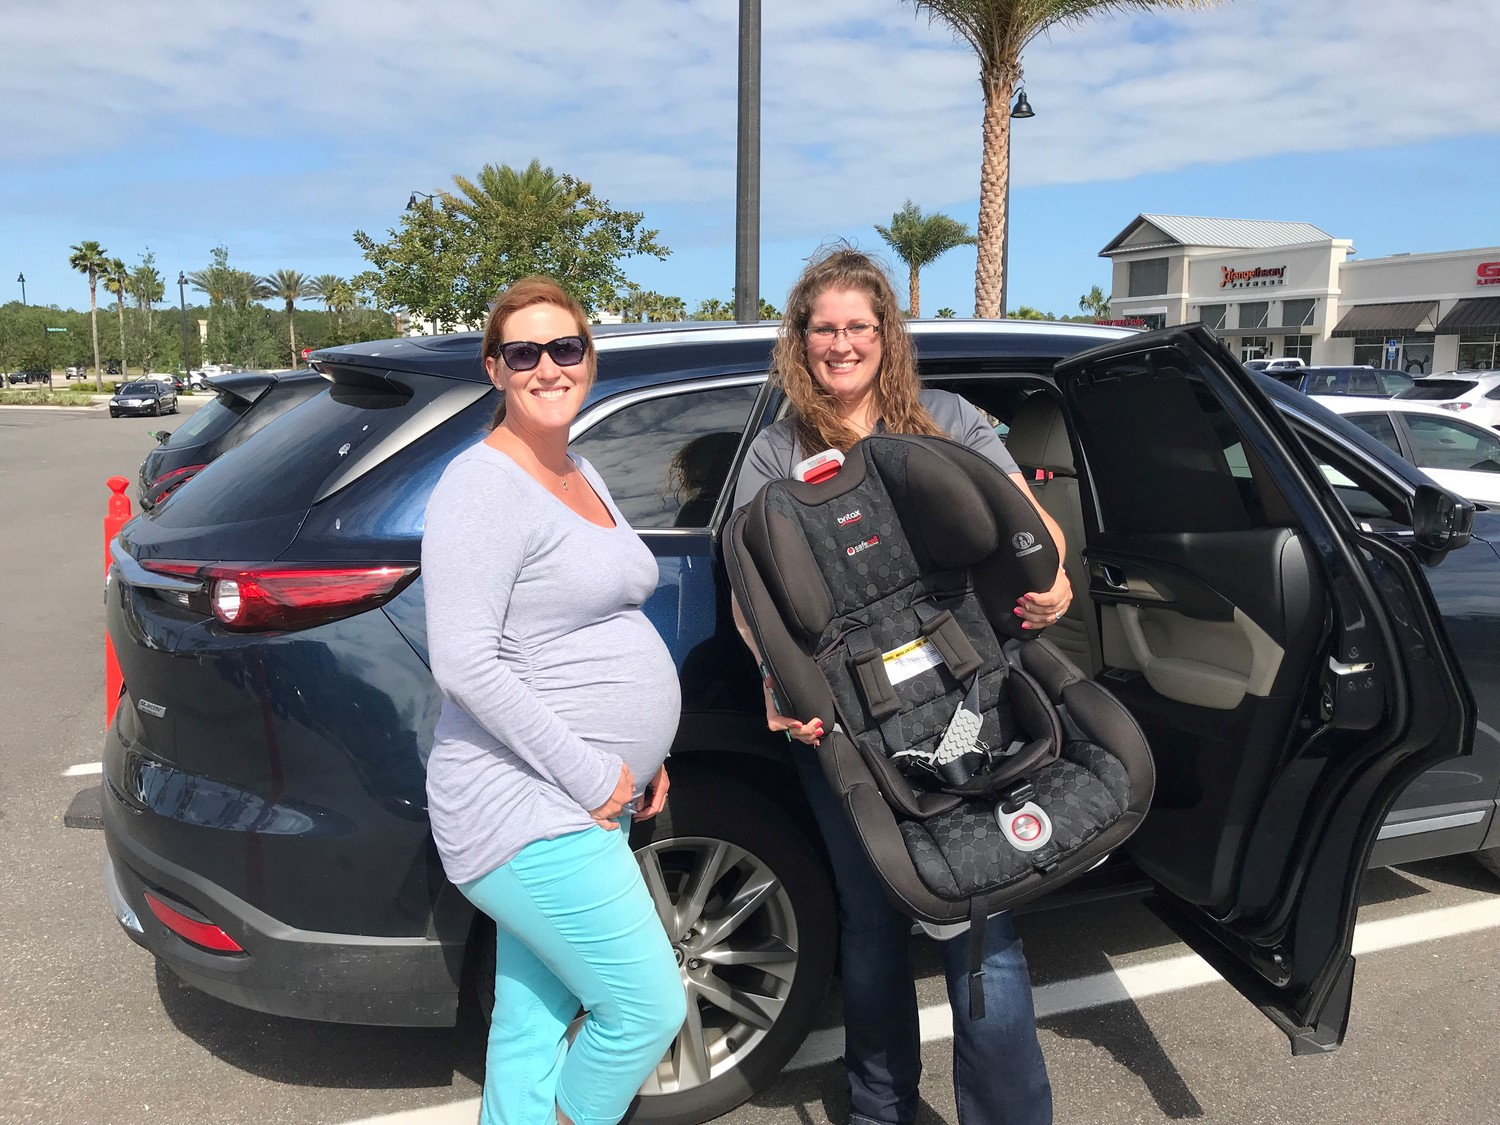 Nocatee resident Kristen Paige and St. Johns County Tax Collector Office employee Vanessa Suarez pose for a photo at the May 2 car seat safety check hosted by REMAX Unlimited.